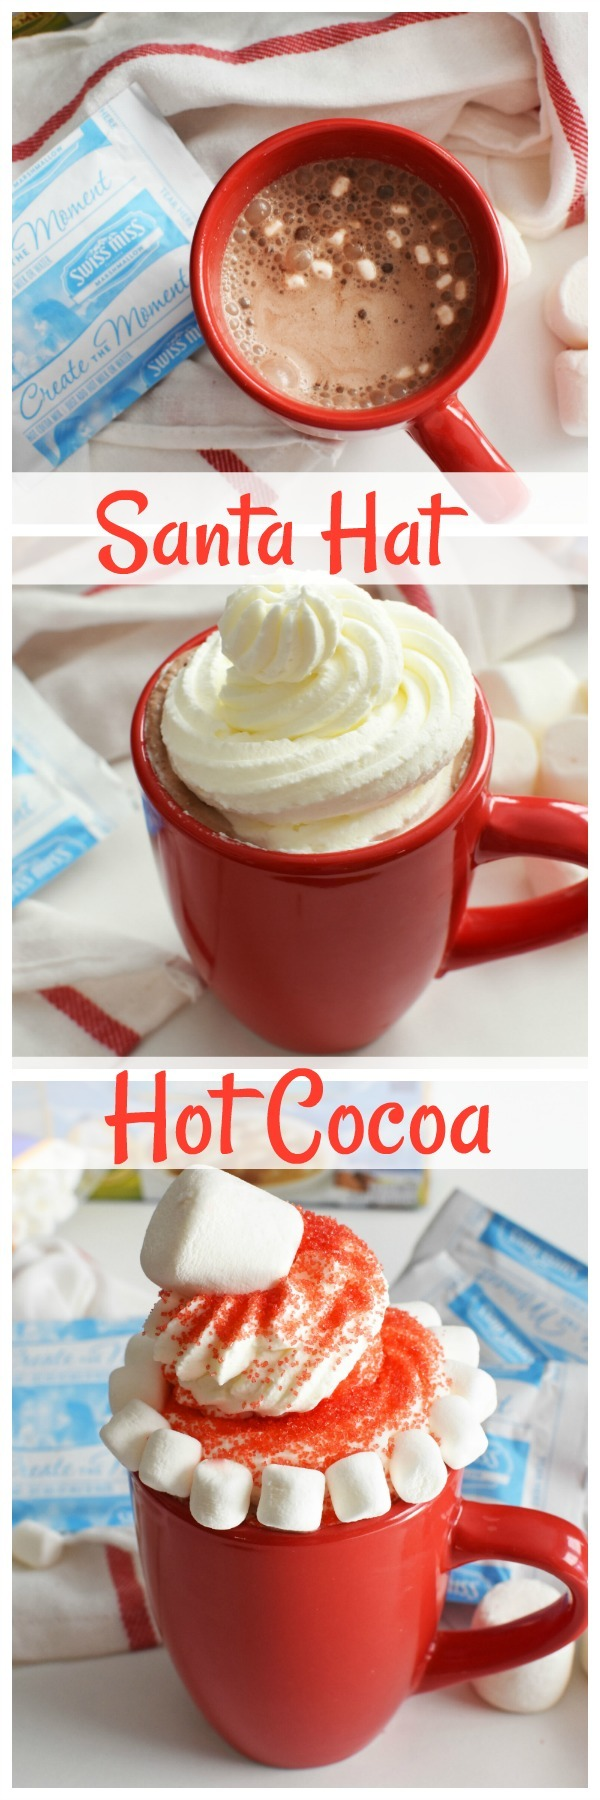 Santa Hat Hot Cocoa DIY Drink